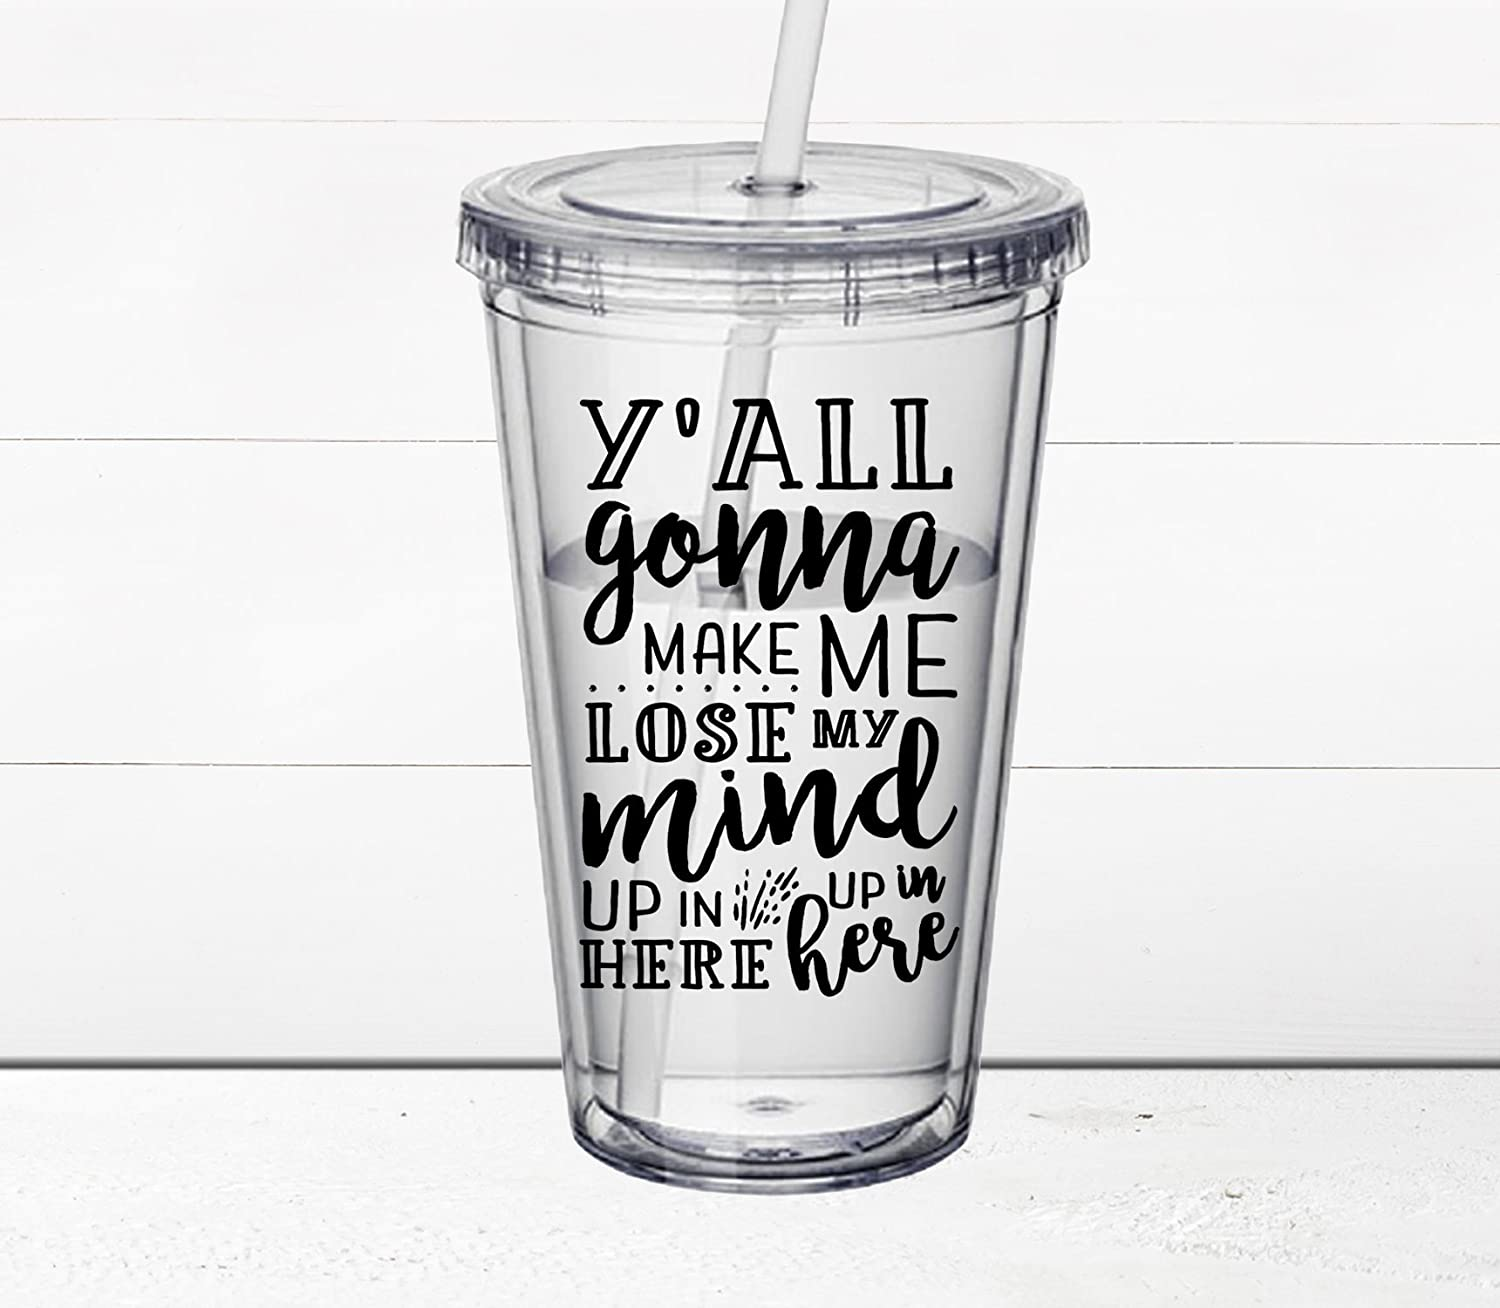 Mother's Day Gift - Sassy Quotes on 16 oz. Acrylic Tumbler with Straw - Y'all Gonna Make Me Lose My Mind - BPA-free Double-walled Travel Tumbler - Travel Cup - Hot or Cold - Funny Quotes